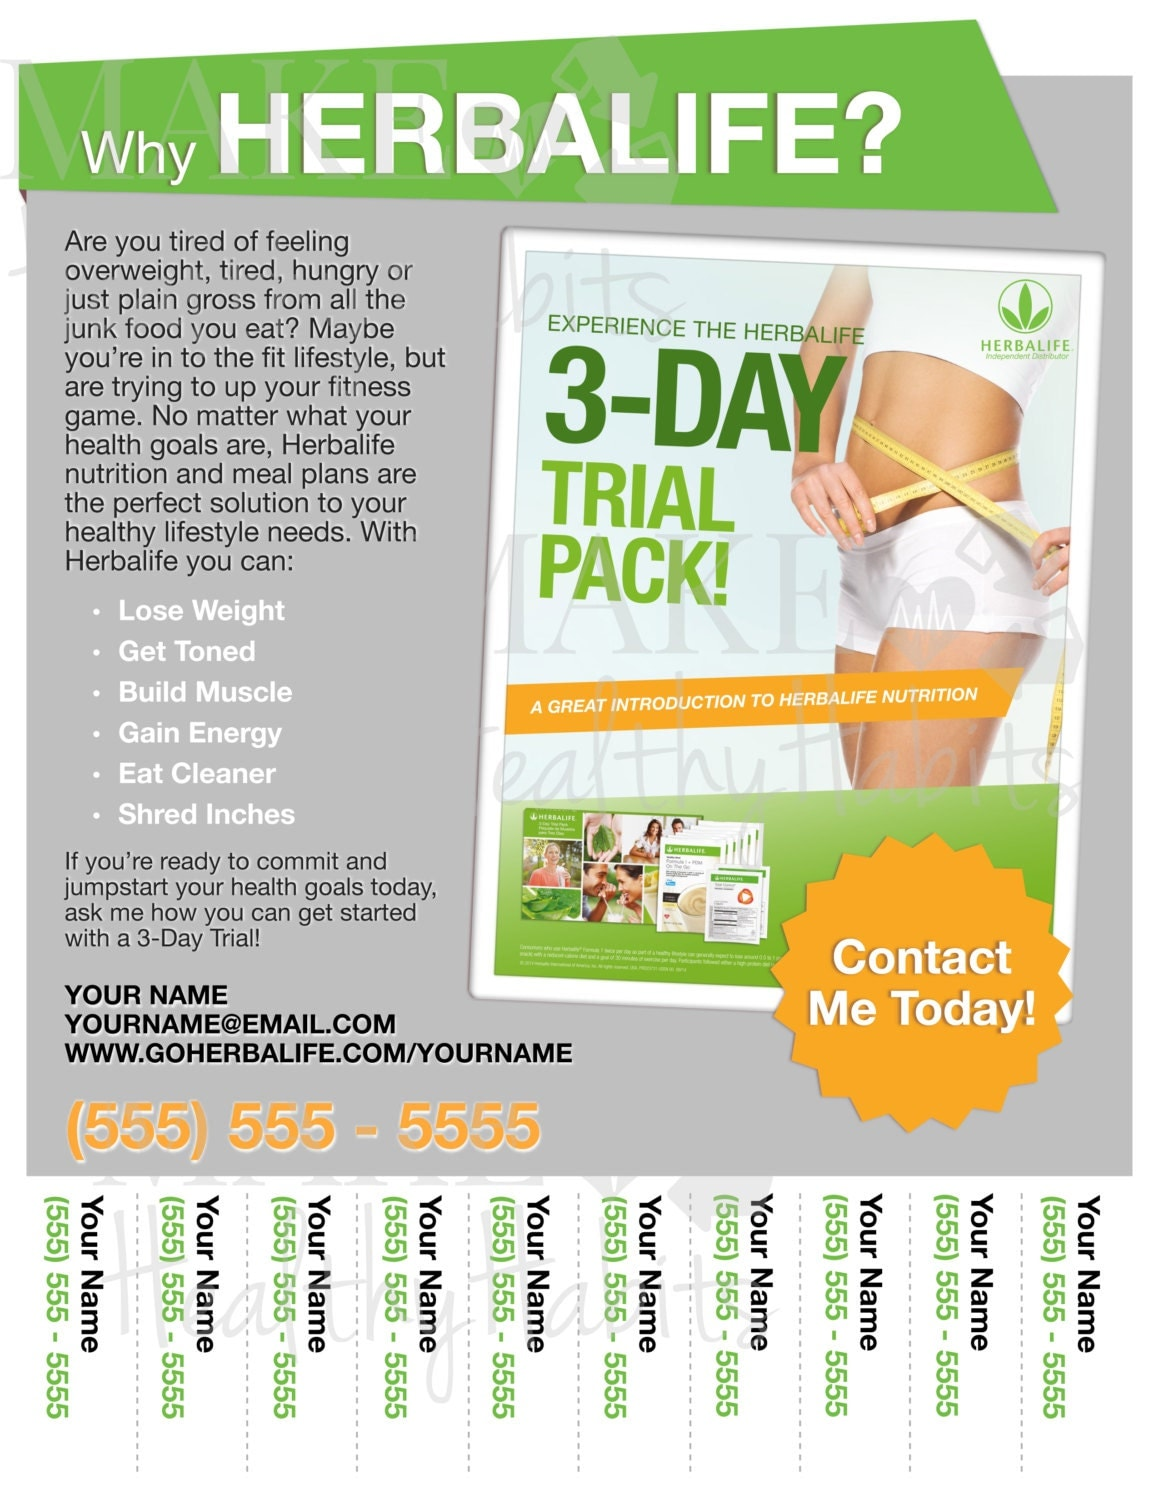 Printable herbalife flyer by kellylynnettedesigns on etsy for Herbalife templates